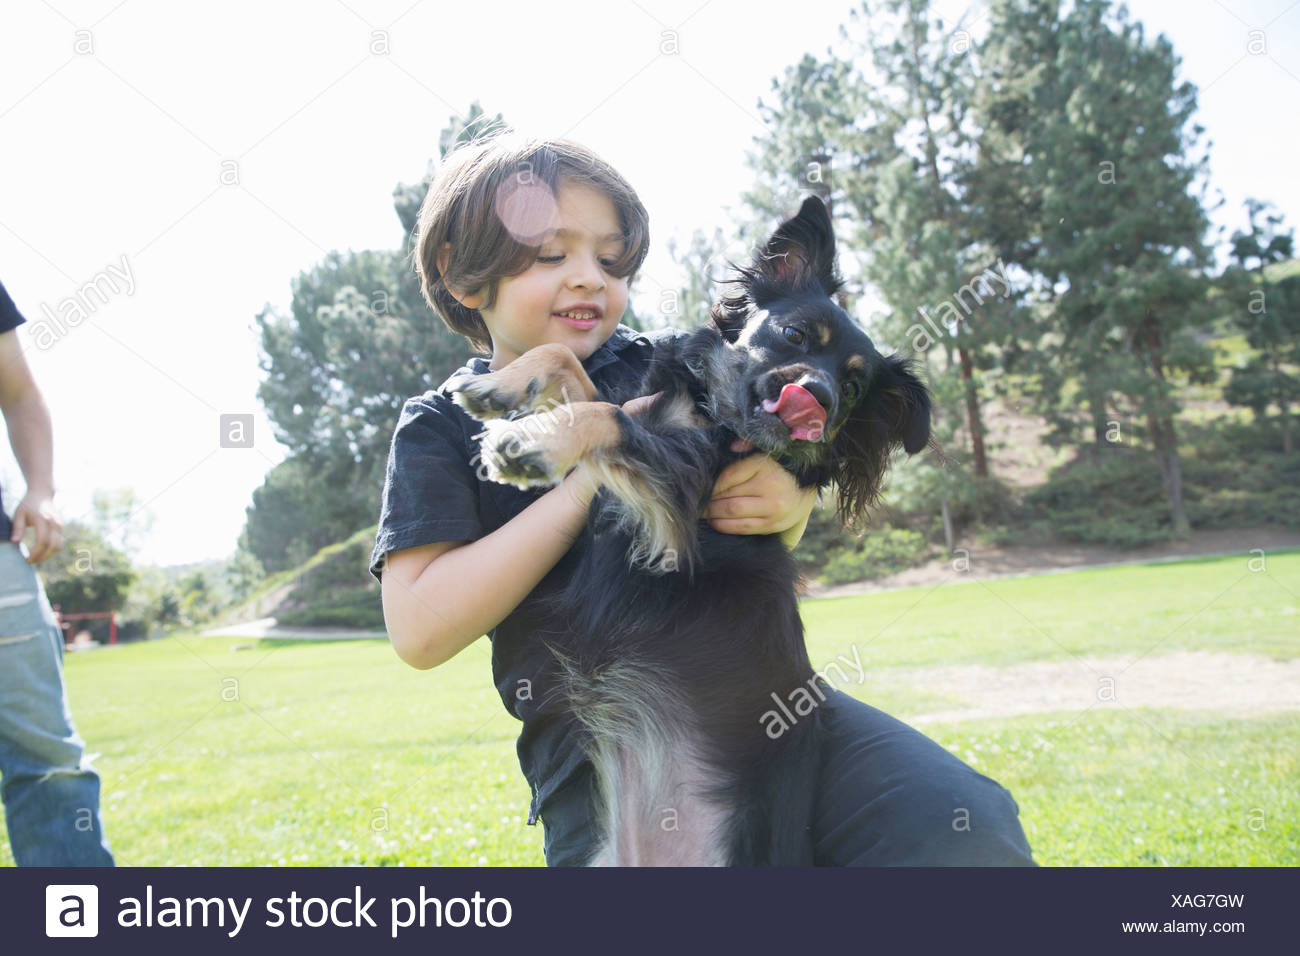 Young boy in park playing with his dog Stock Photo